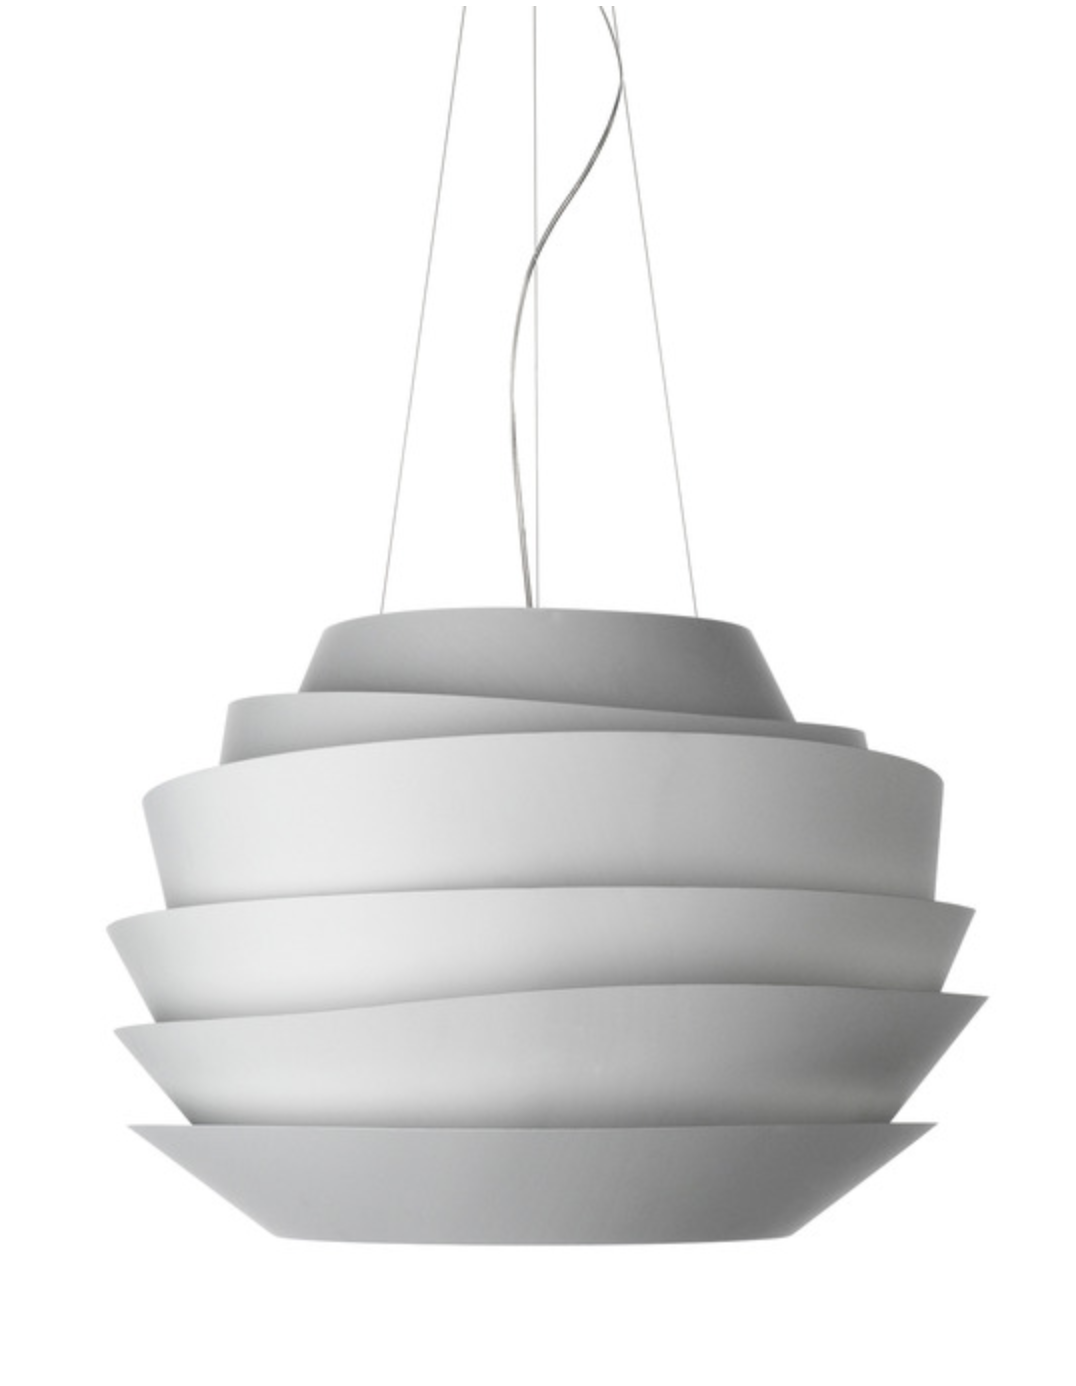 This spherical pendant is made of white bands that diffuse the light and create a soft, dimensional glow. Light is also projected directly upward and downward to dramatically highlight the space, making it the perfect welcoming statement piece. Interior wall and ceiling color is Sherwin Williams Repose Gray SW 7015. The trim is bright white. #SherwinWilliamsReposeGrayInteriorWalls #ReposeGraySW7015 #interiorpaintcolor #lightgrayinteriorpaintcolors